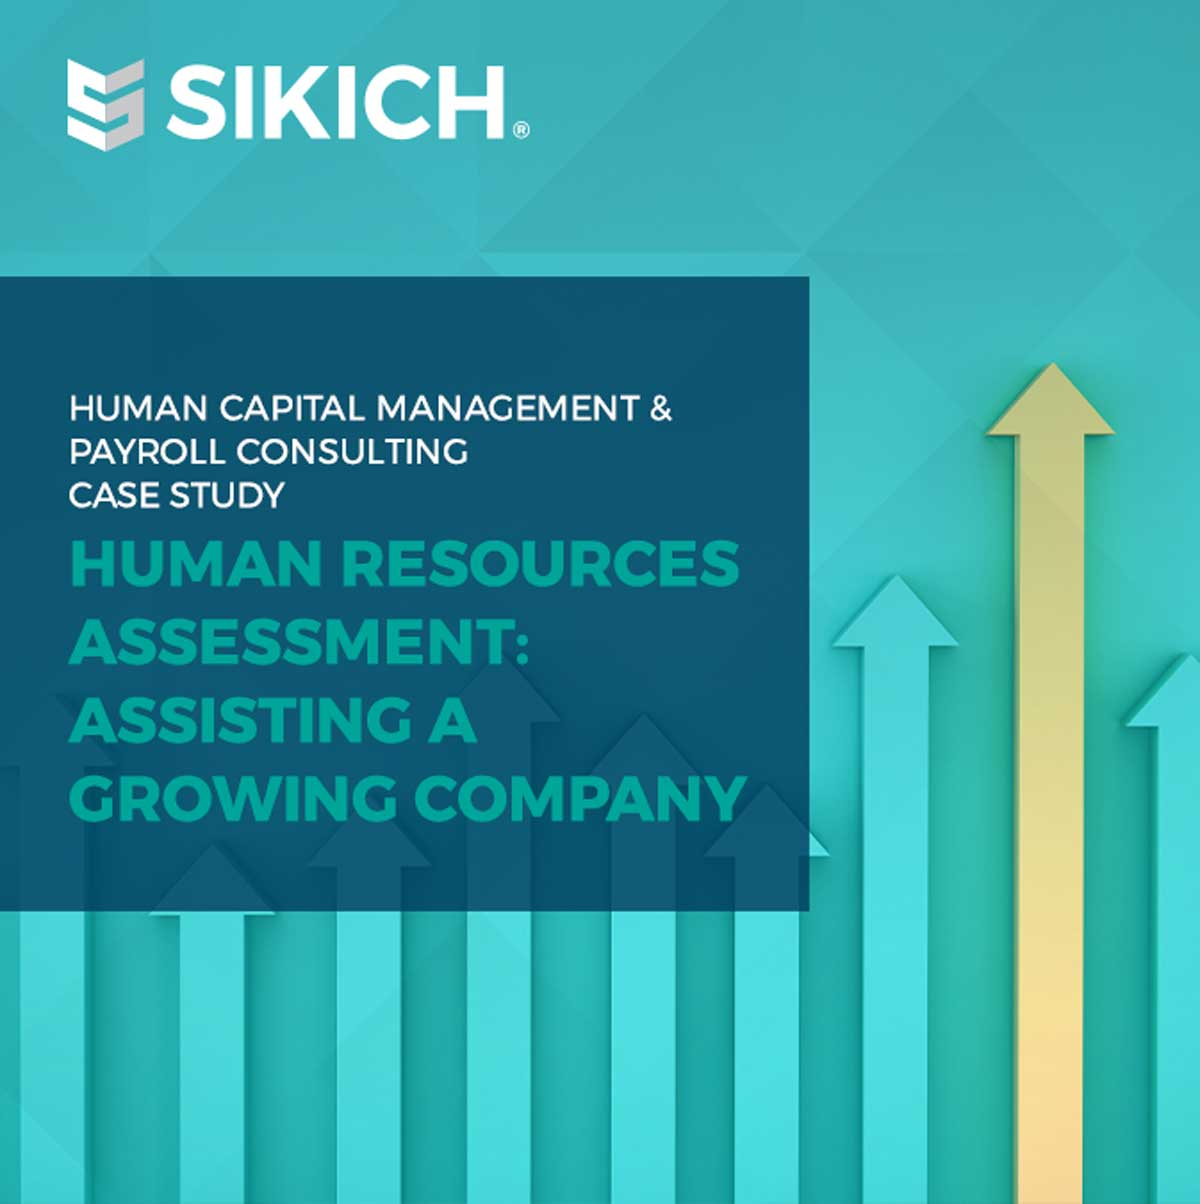 Sikich Assisting a Growing Company